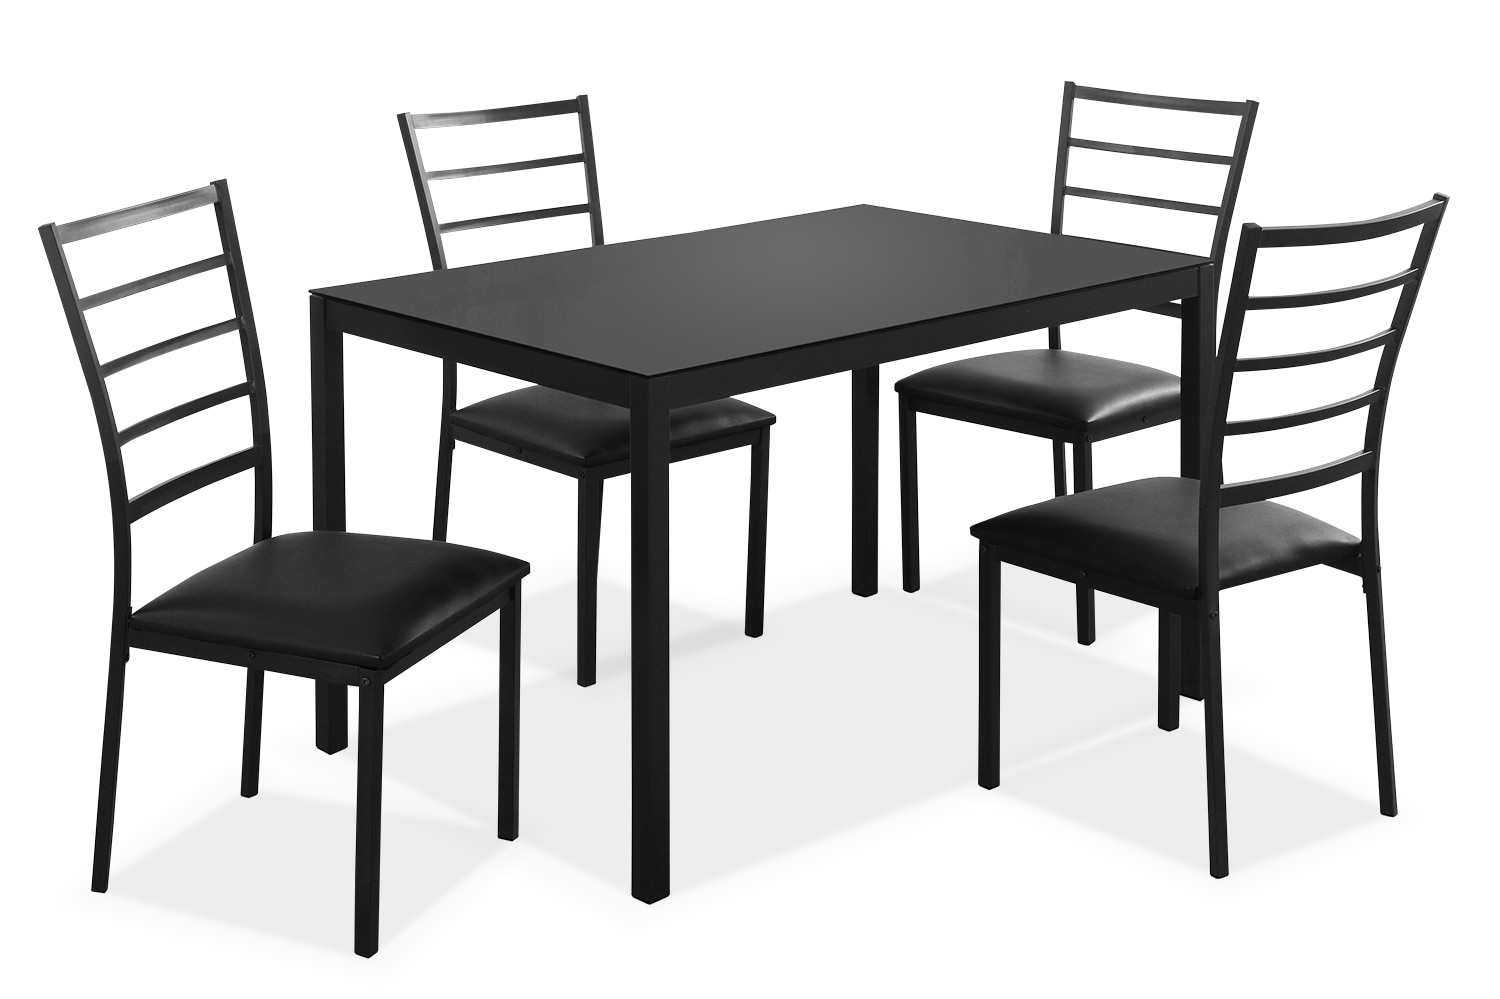 Dining Room Furniture - Monarch 5-Piece Dining Package with Glass Tabletop